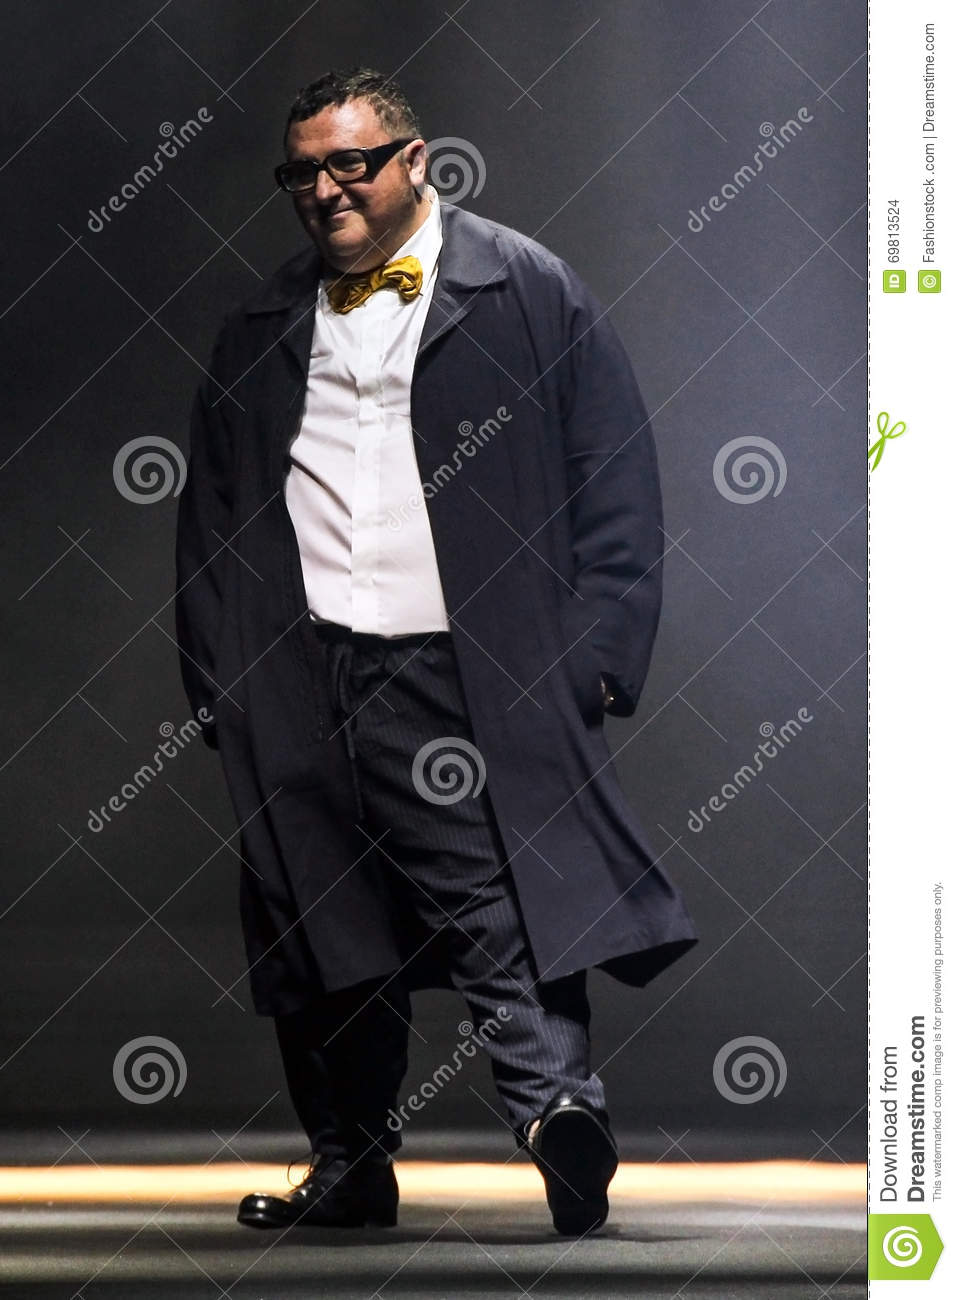 dc3ca2ac6be Designer Alber Elbaz Walks The Runway During The Lanvin Show ...